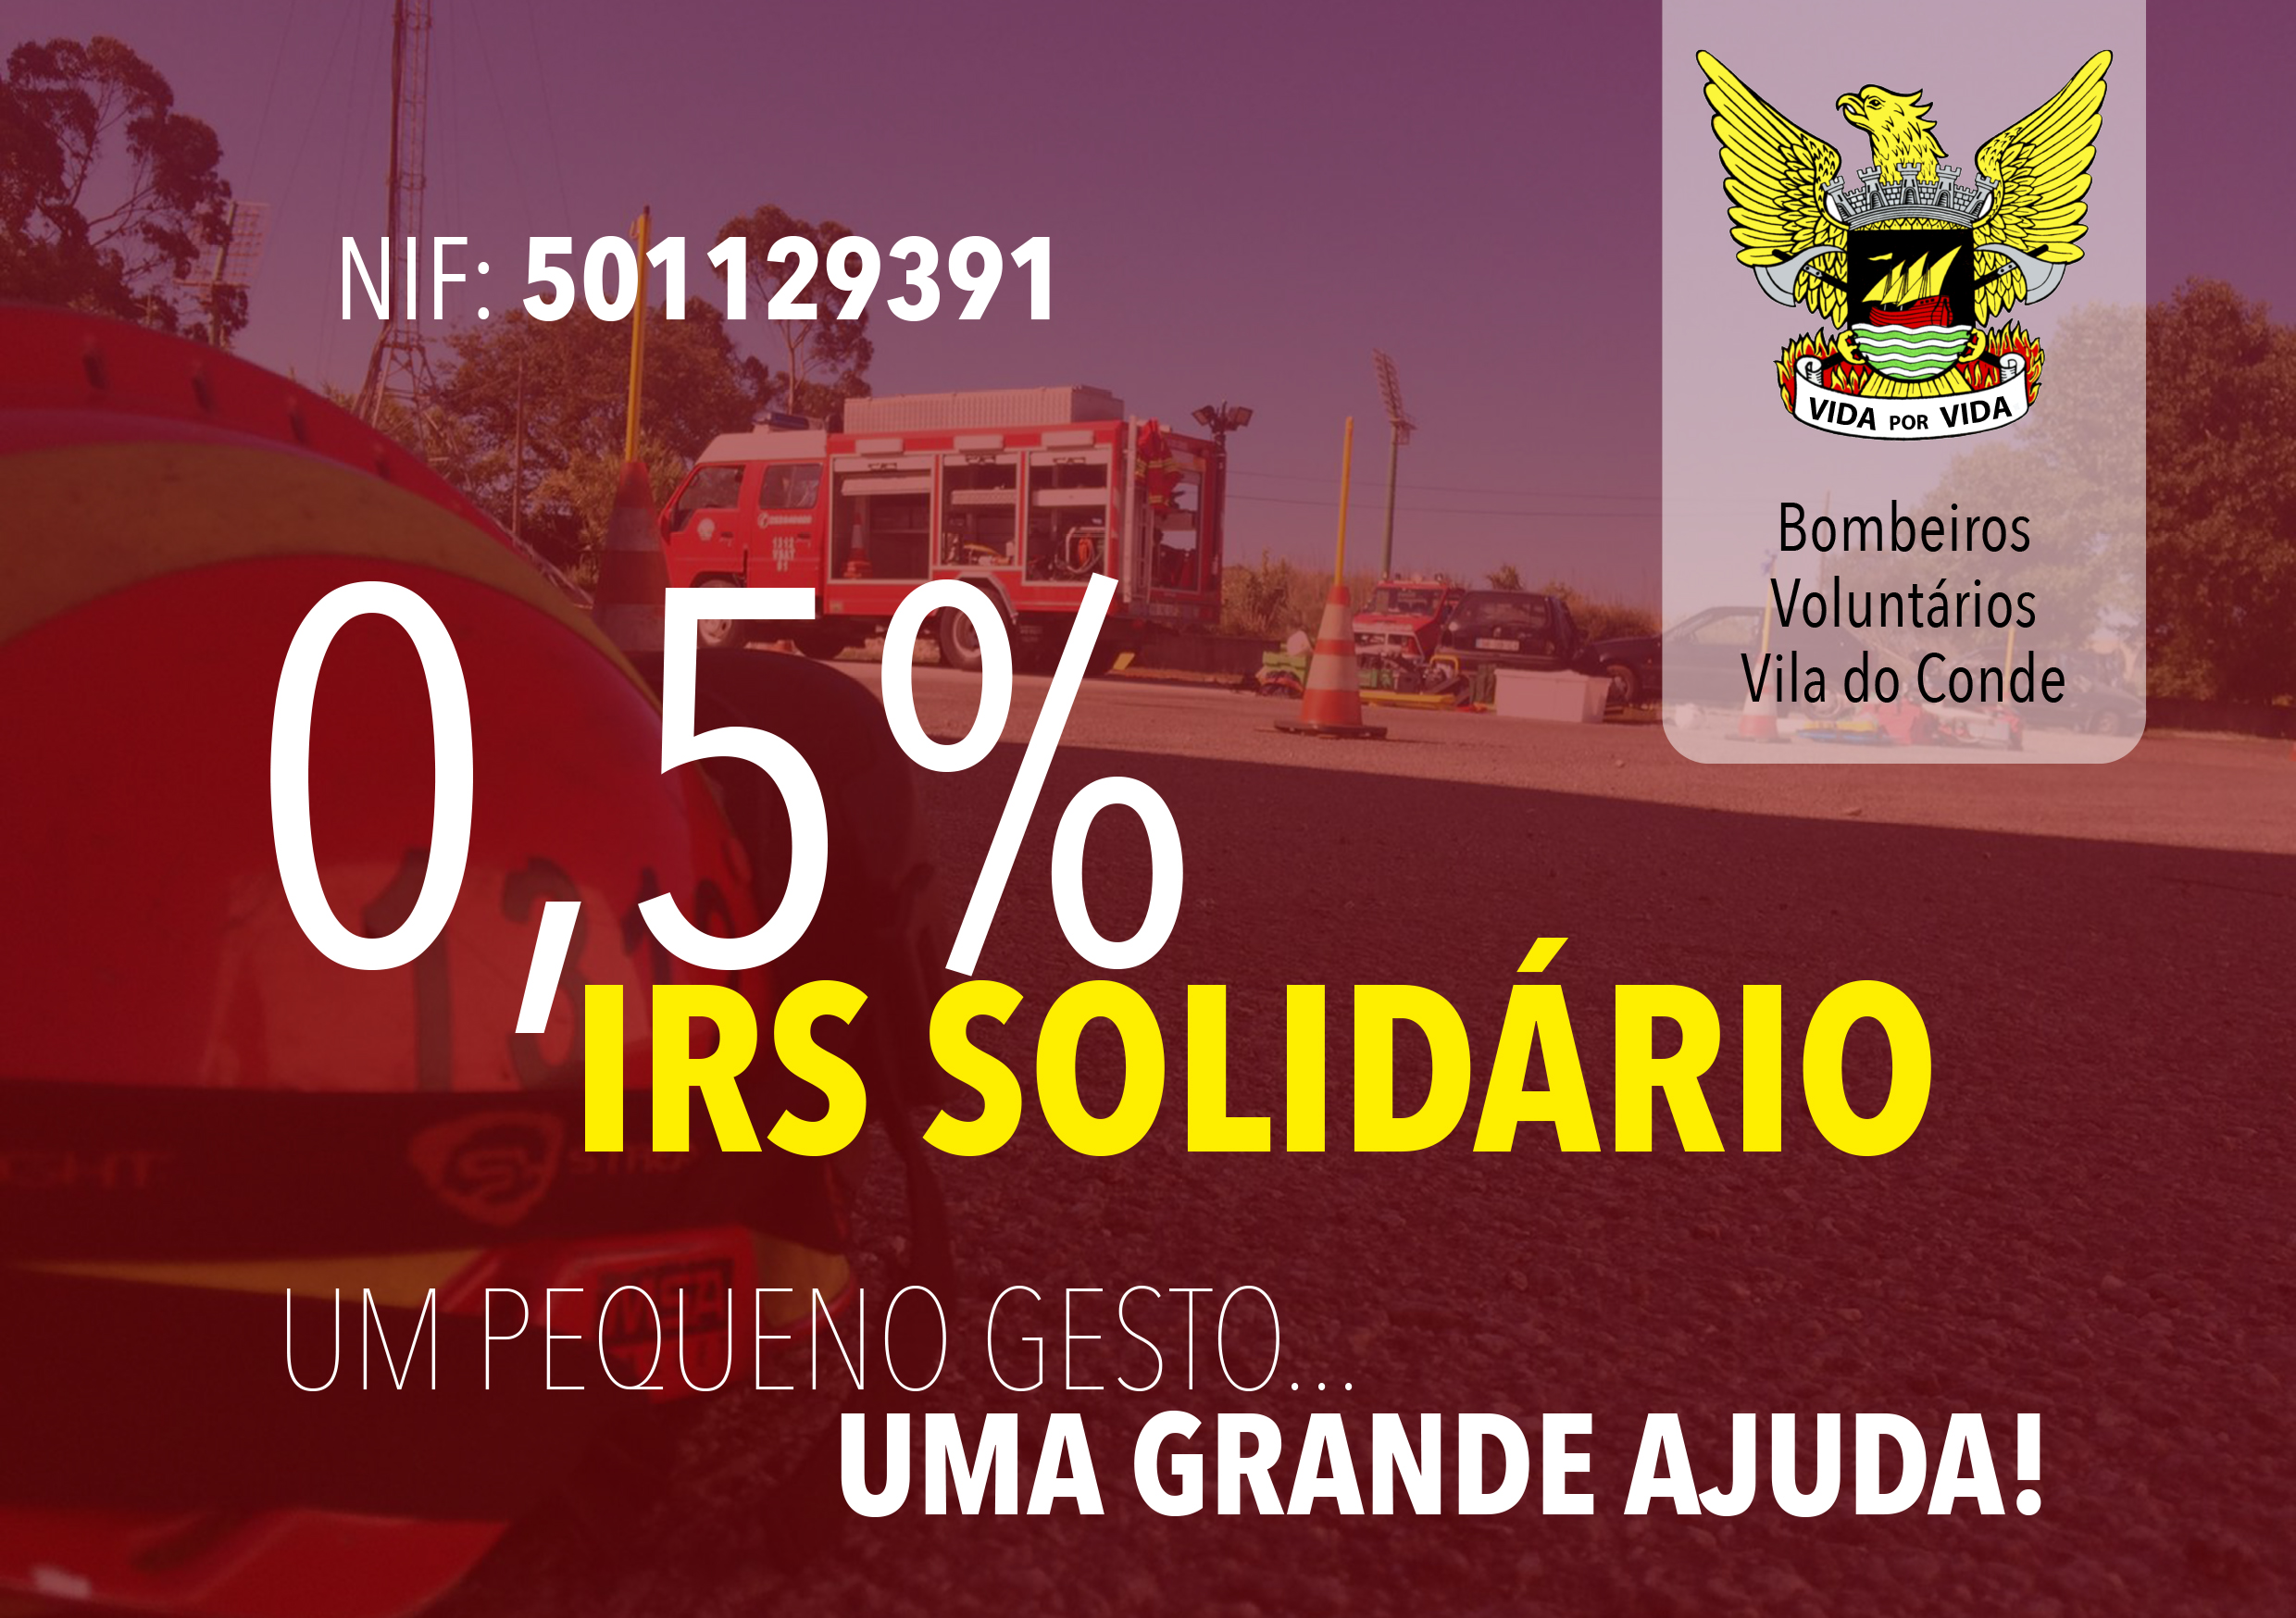 IRS SOLIDÁRIO